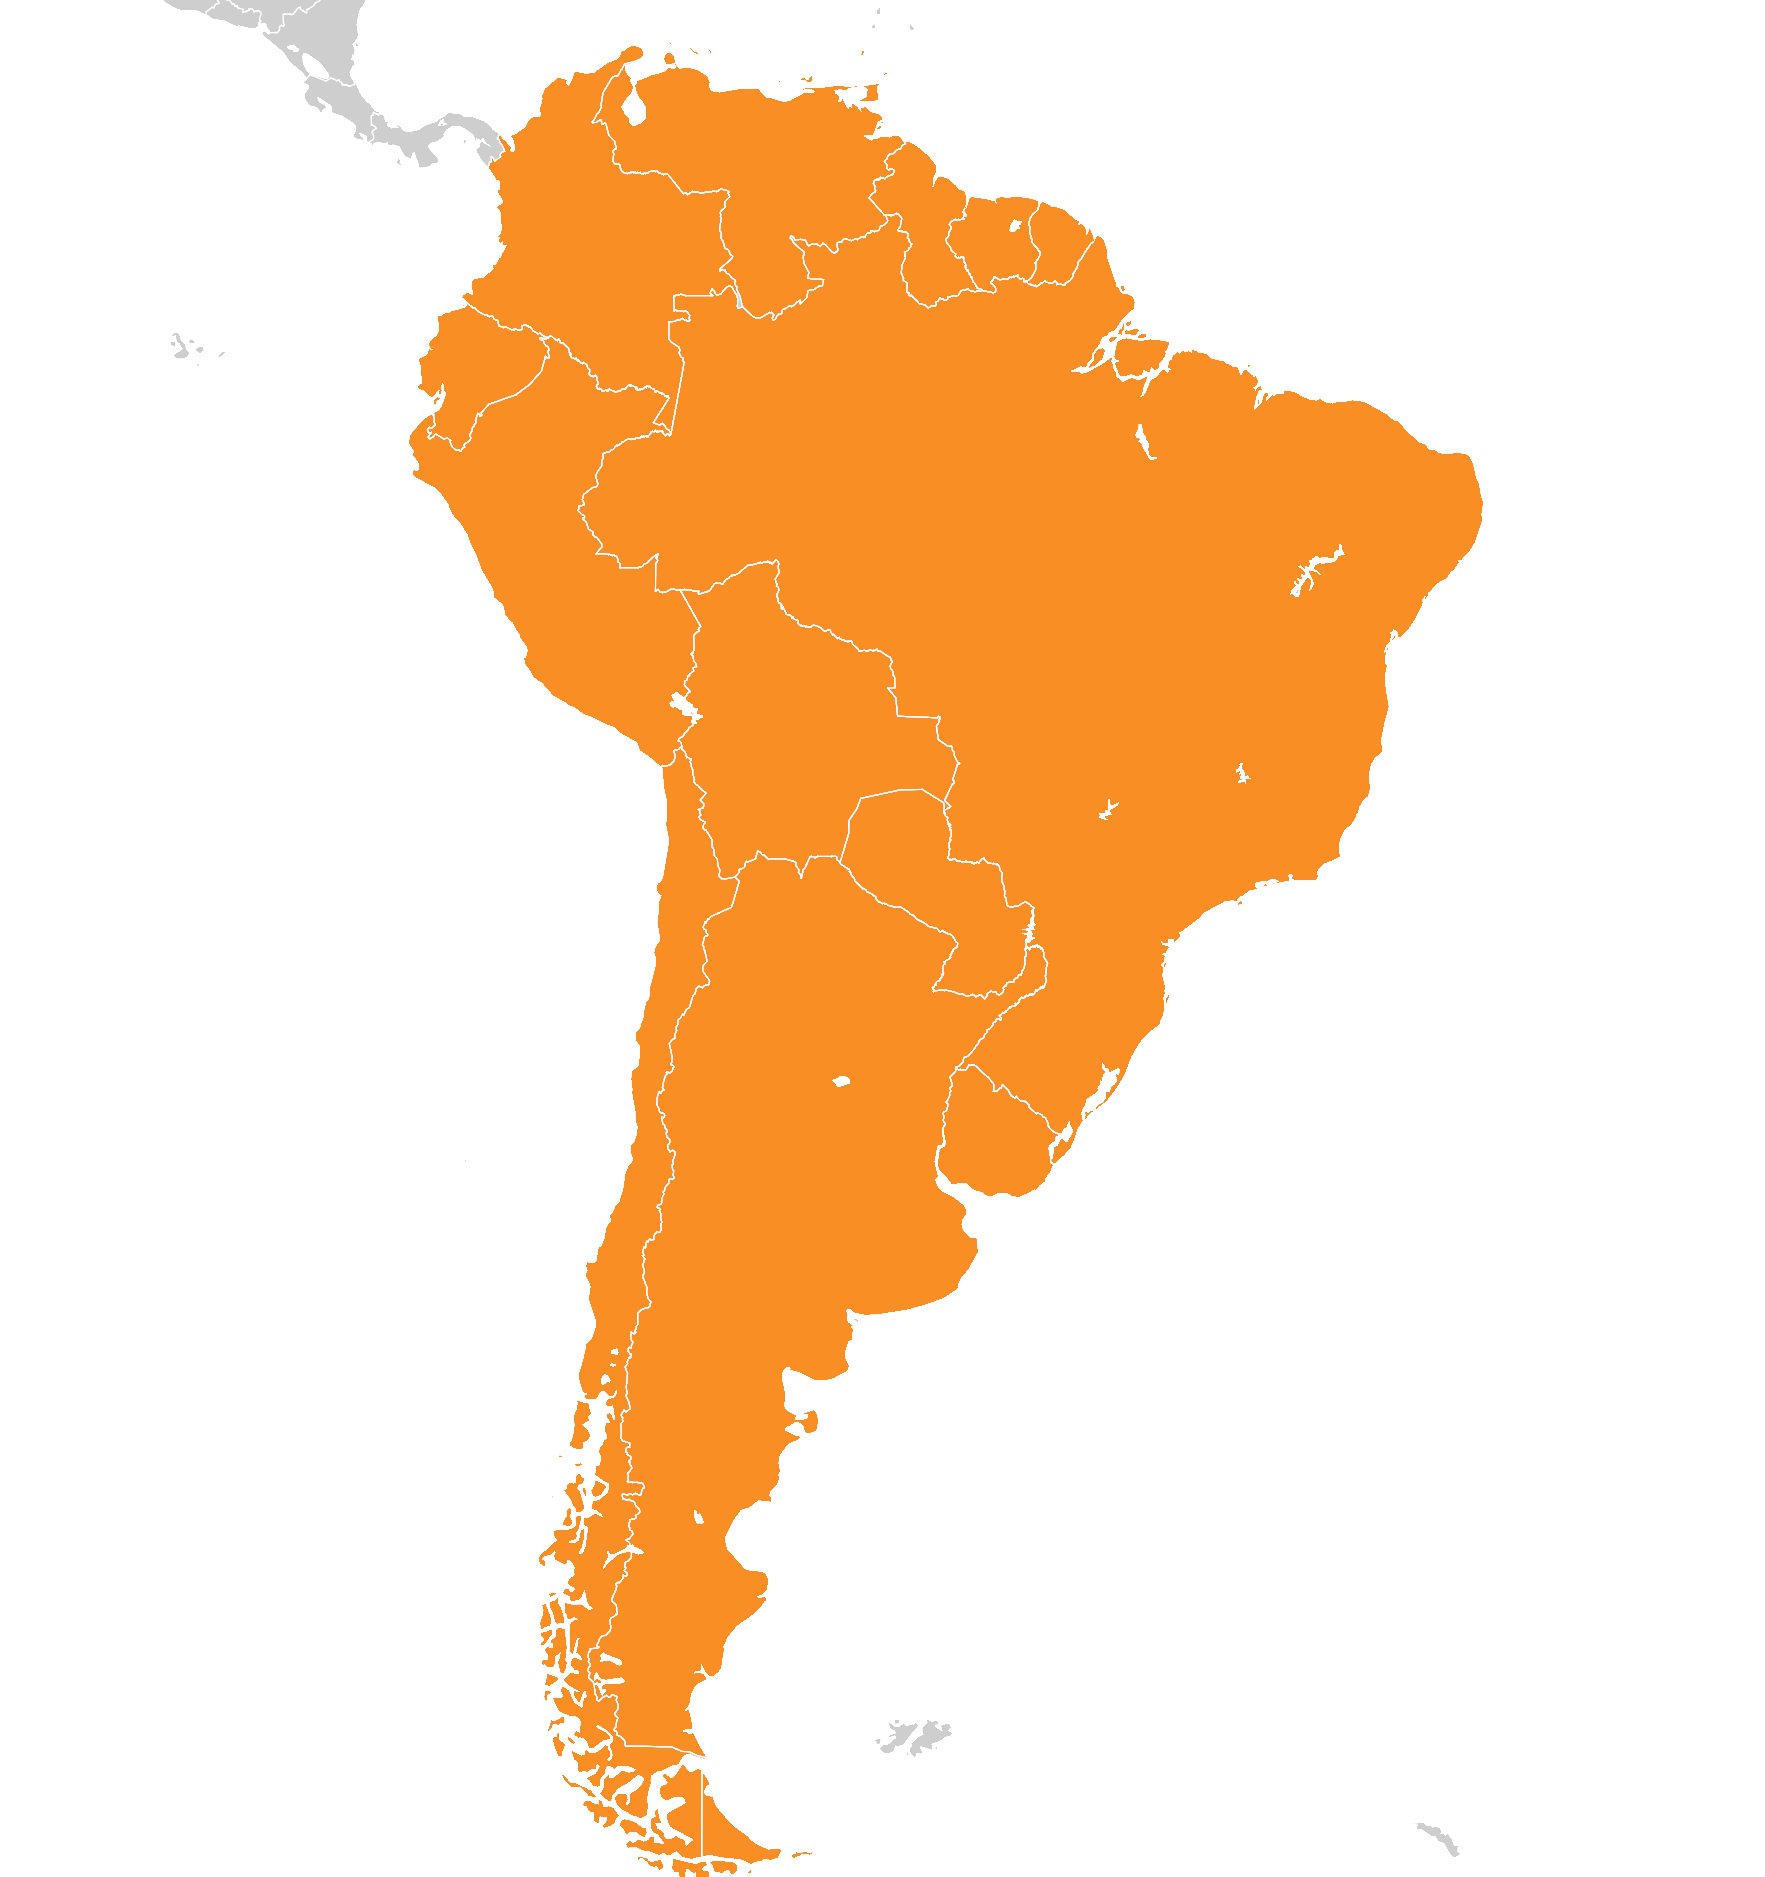 South American